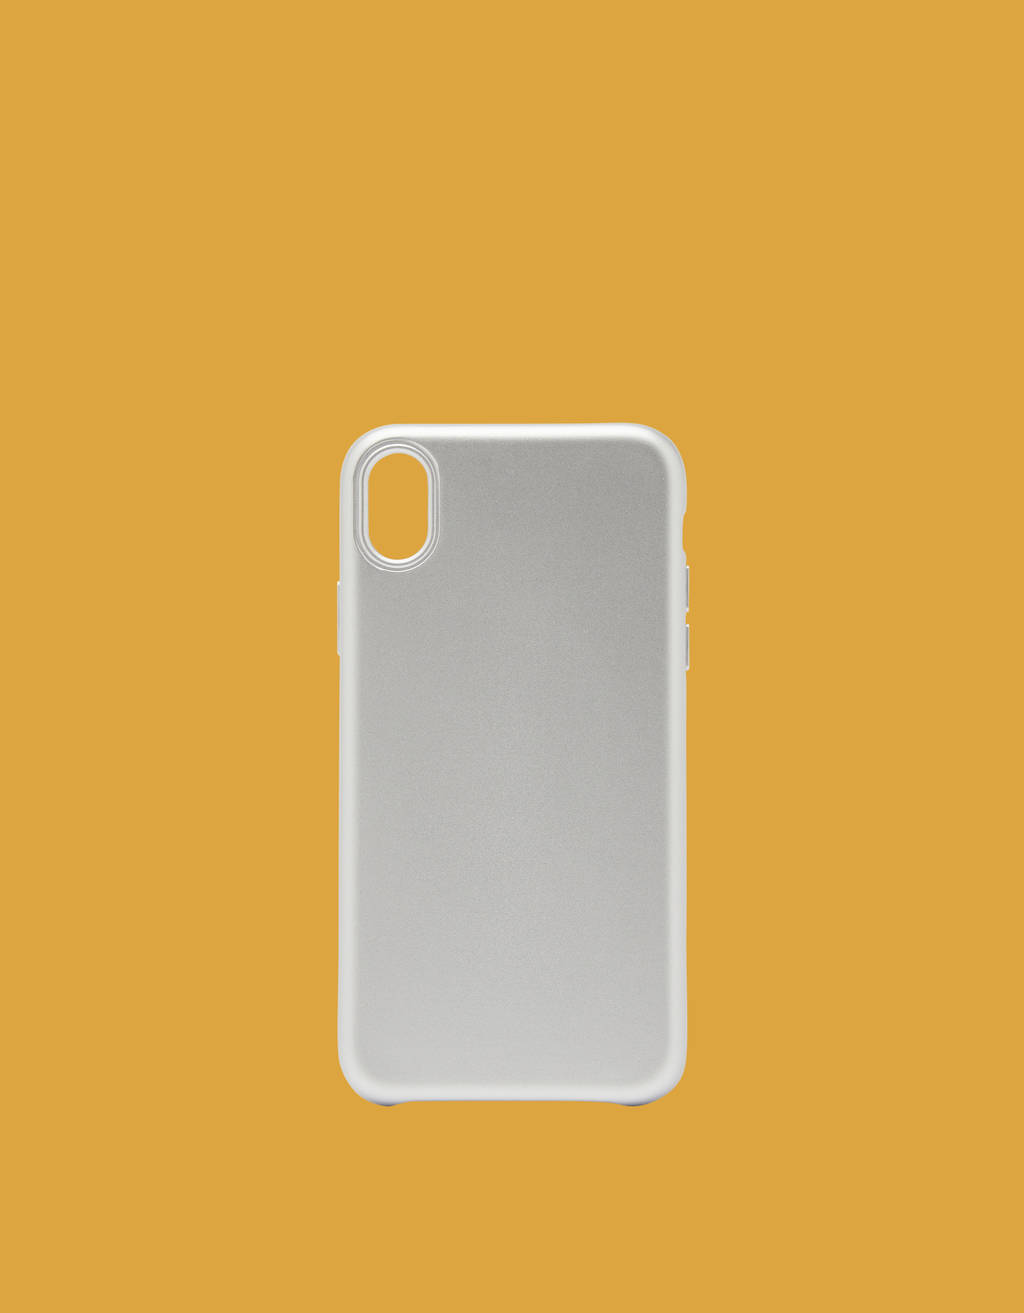 Plain iPhone XR case